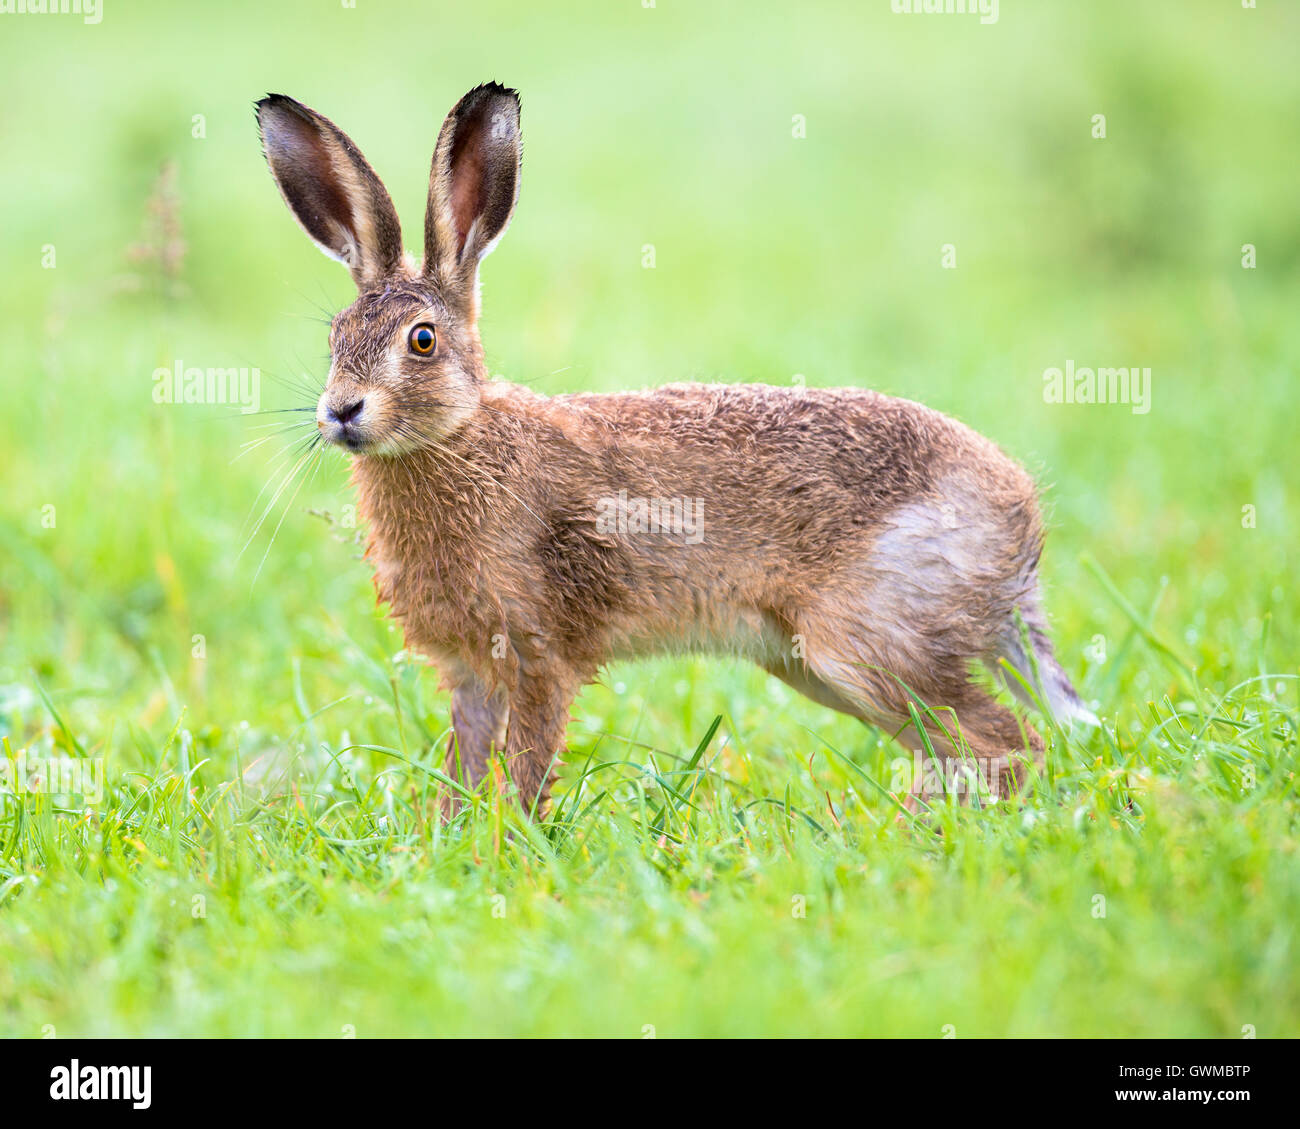 A brown hare in a Summer meadow - Stock Image